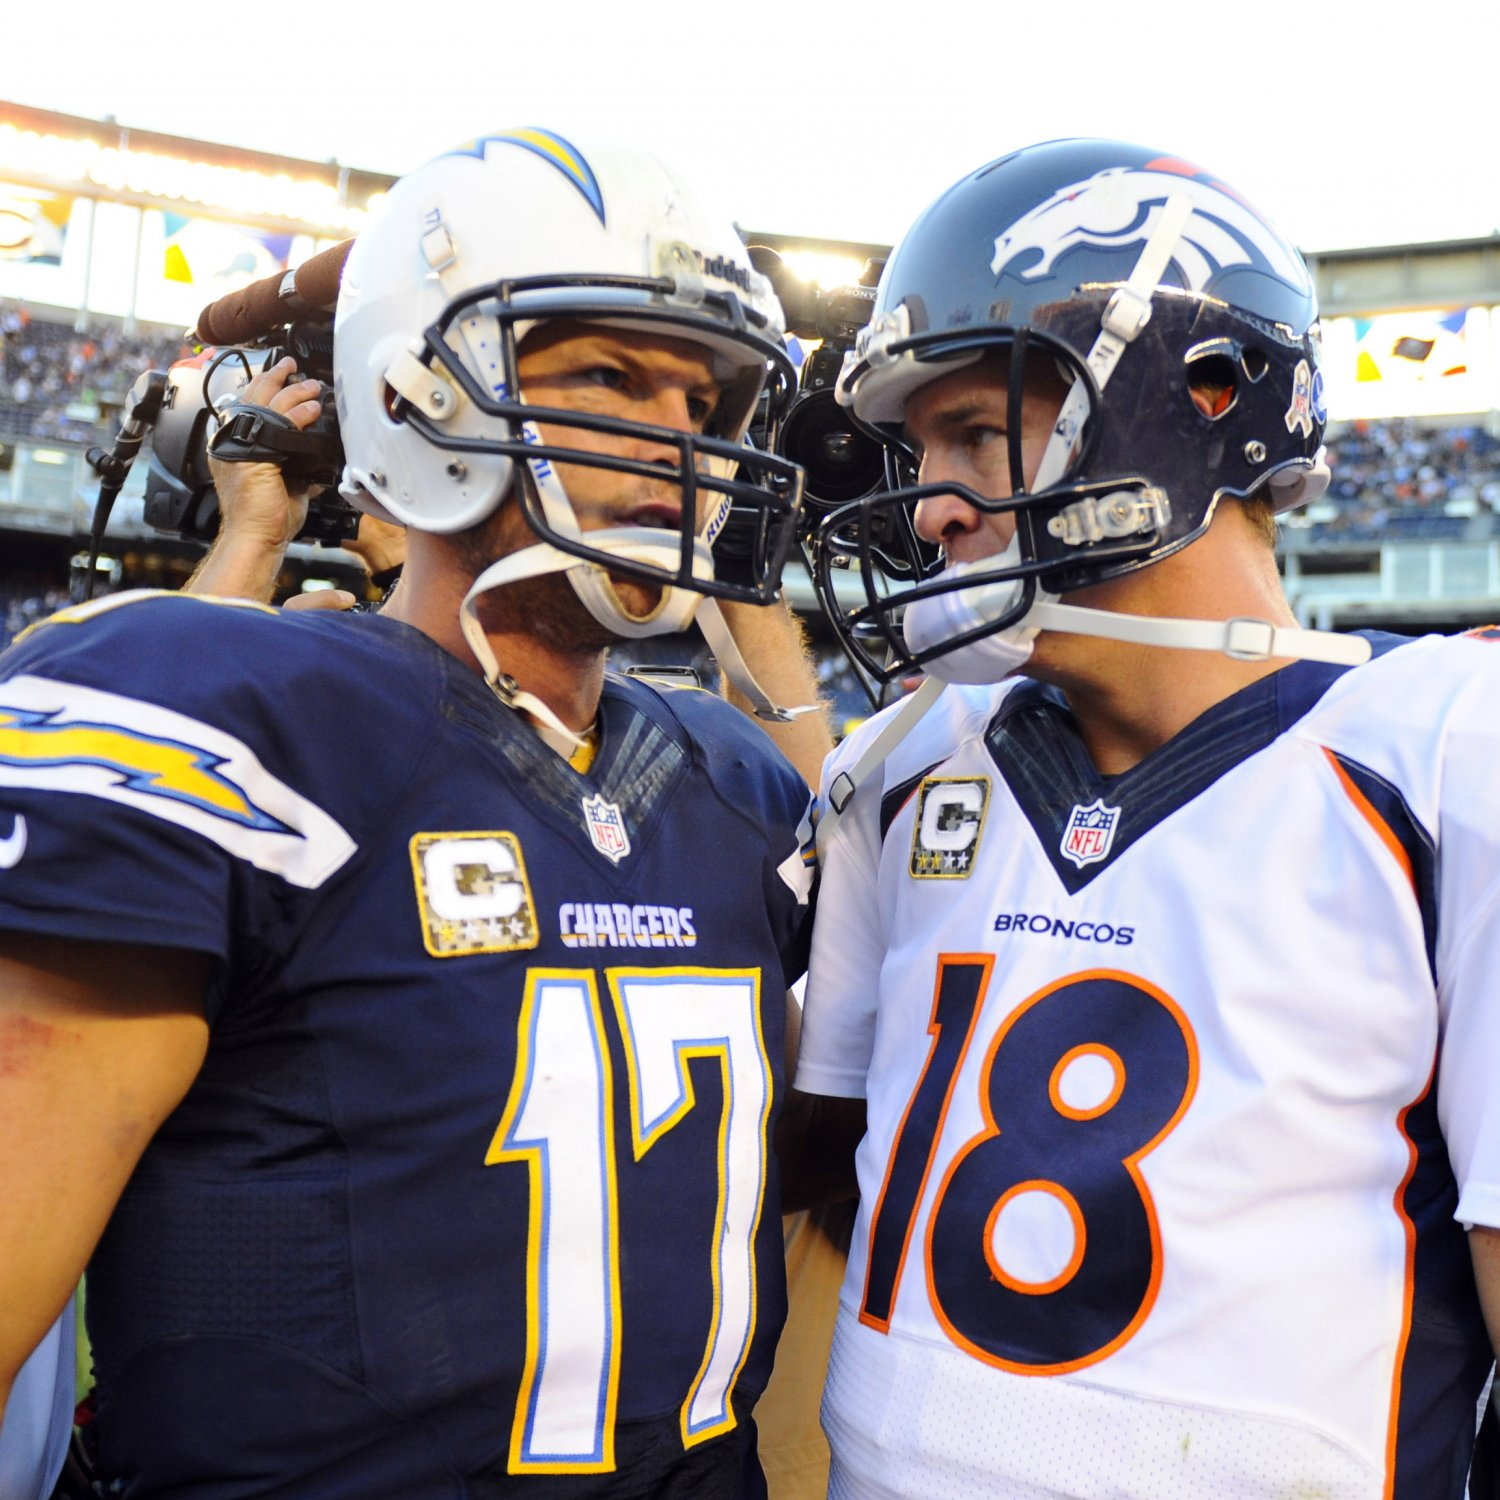 San Diego Chargers Former Playerssan Diego Chargers Forum: San Diego Chargers Vs. Denver Broncos: 5 Storylines To